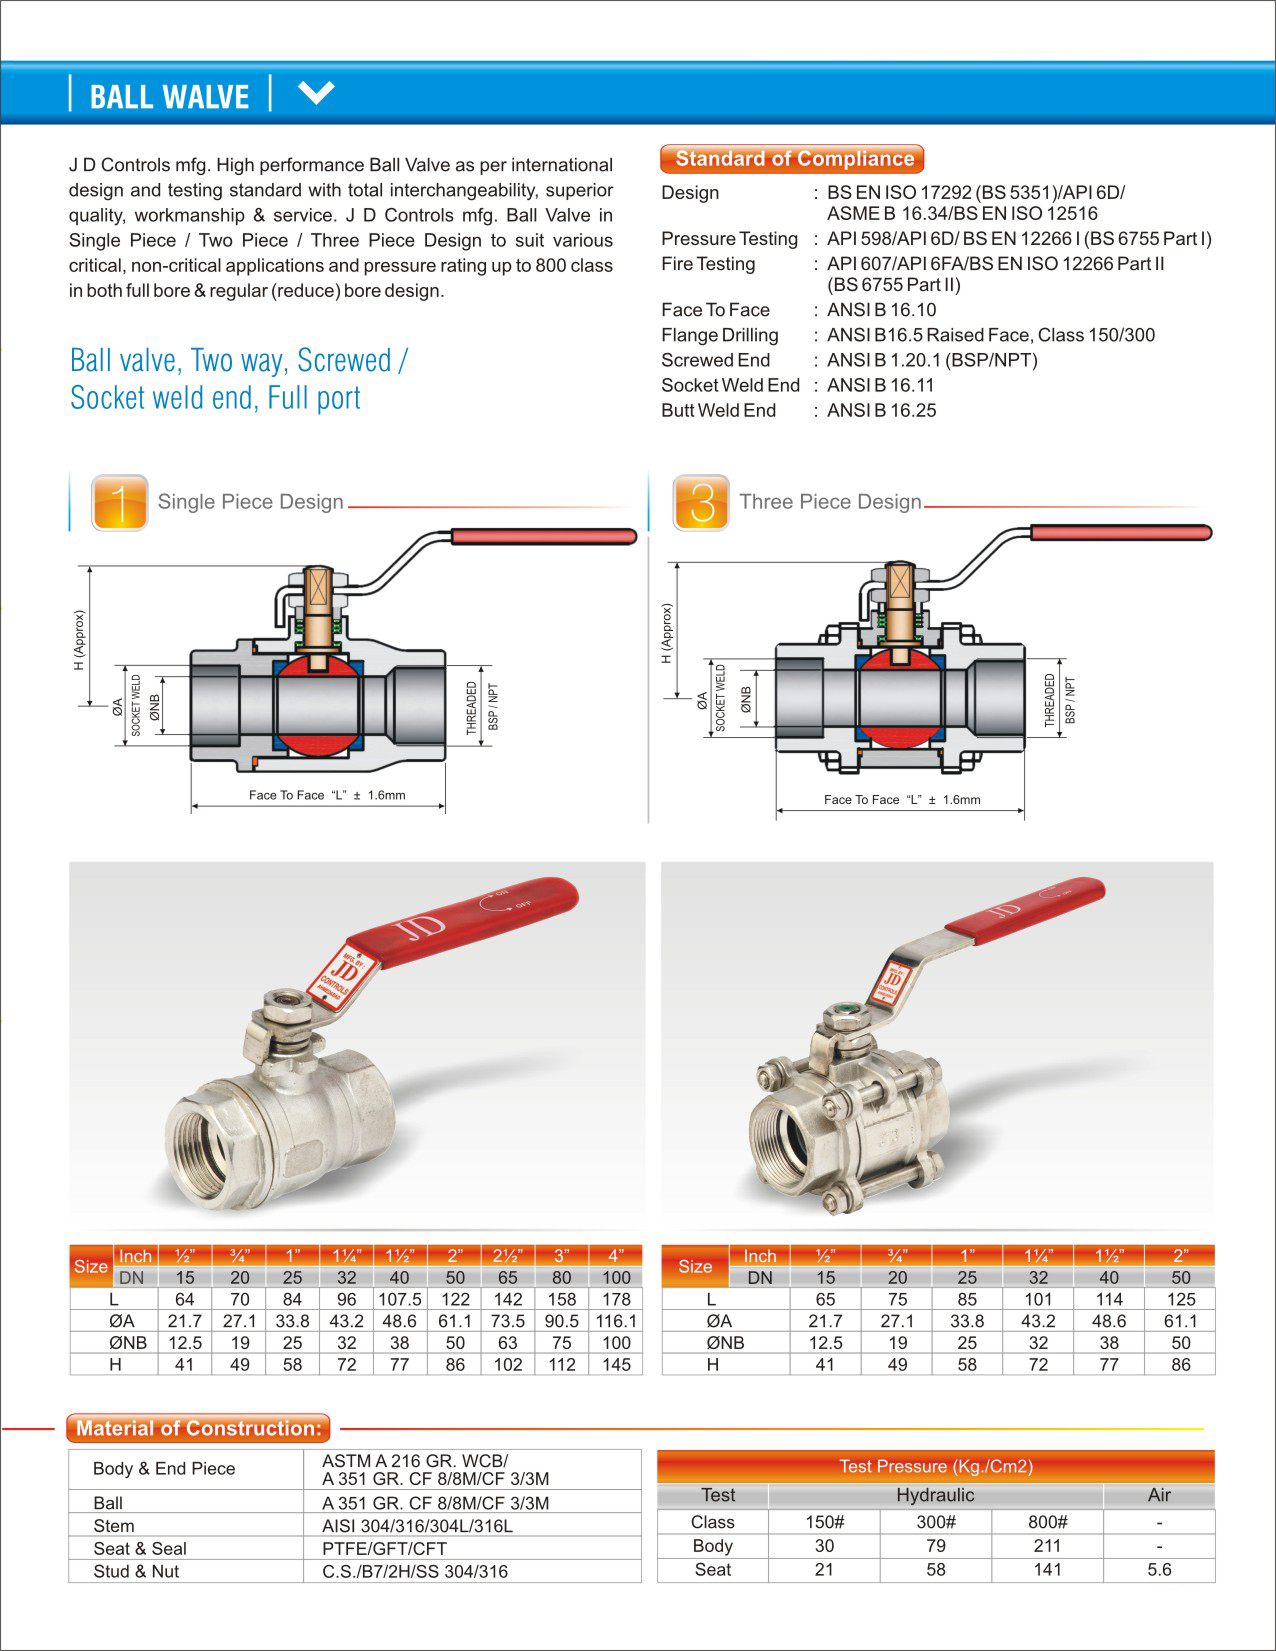 BALL VALVE SPECIFICATION PDF